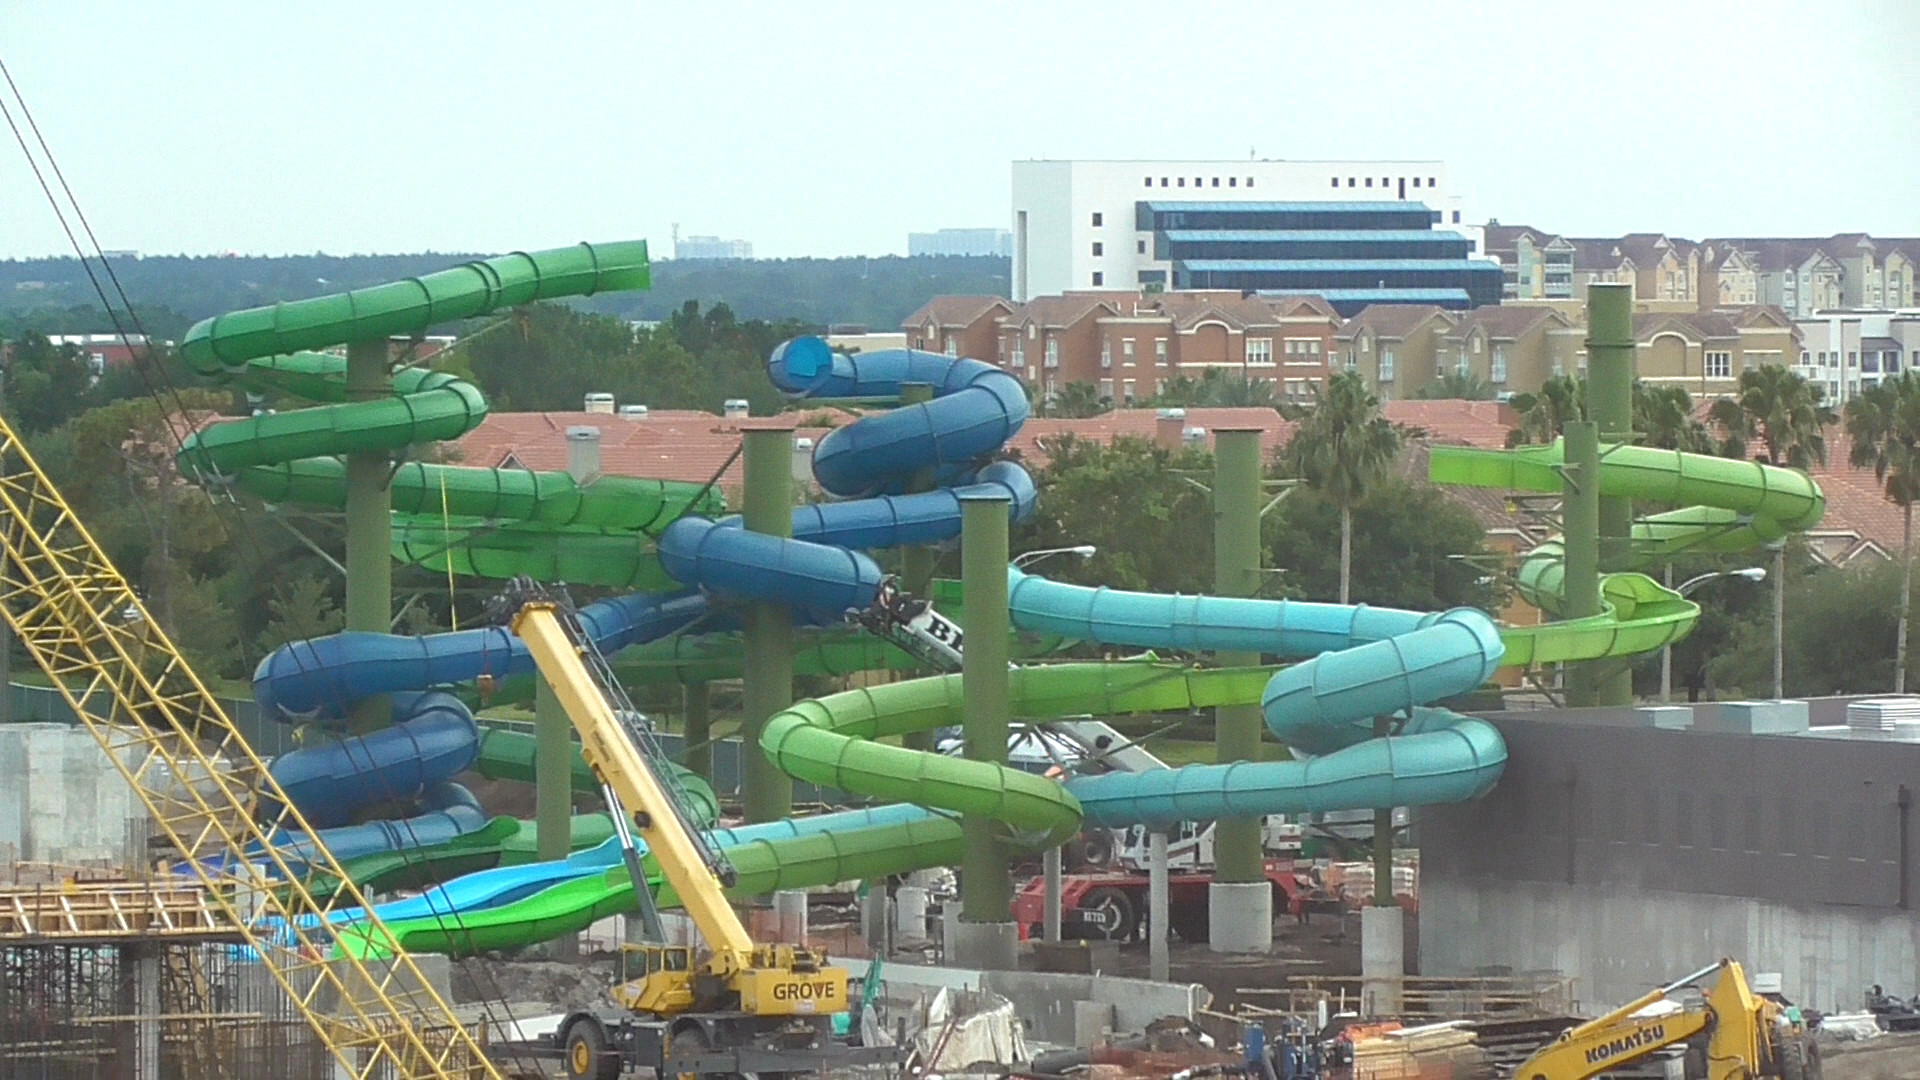 Volcano Bay Orlando S New Water Theme Park From Universal